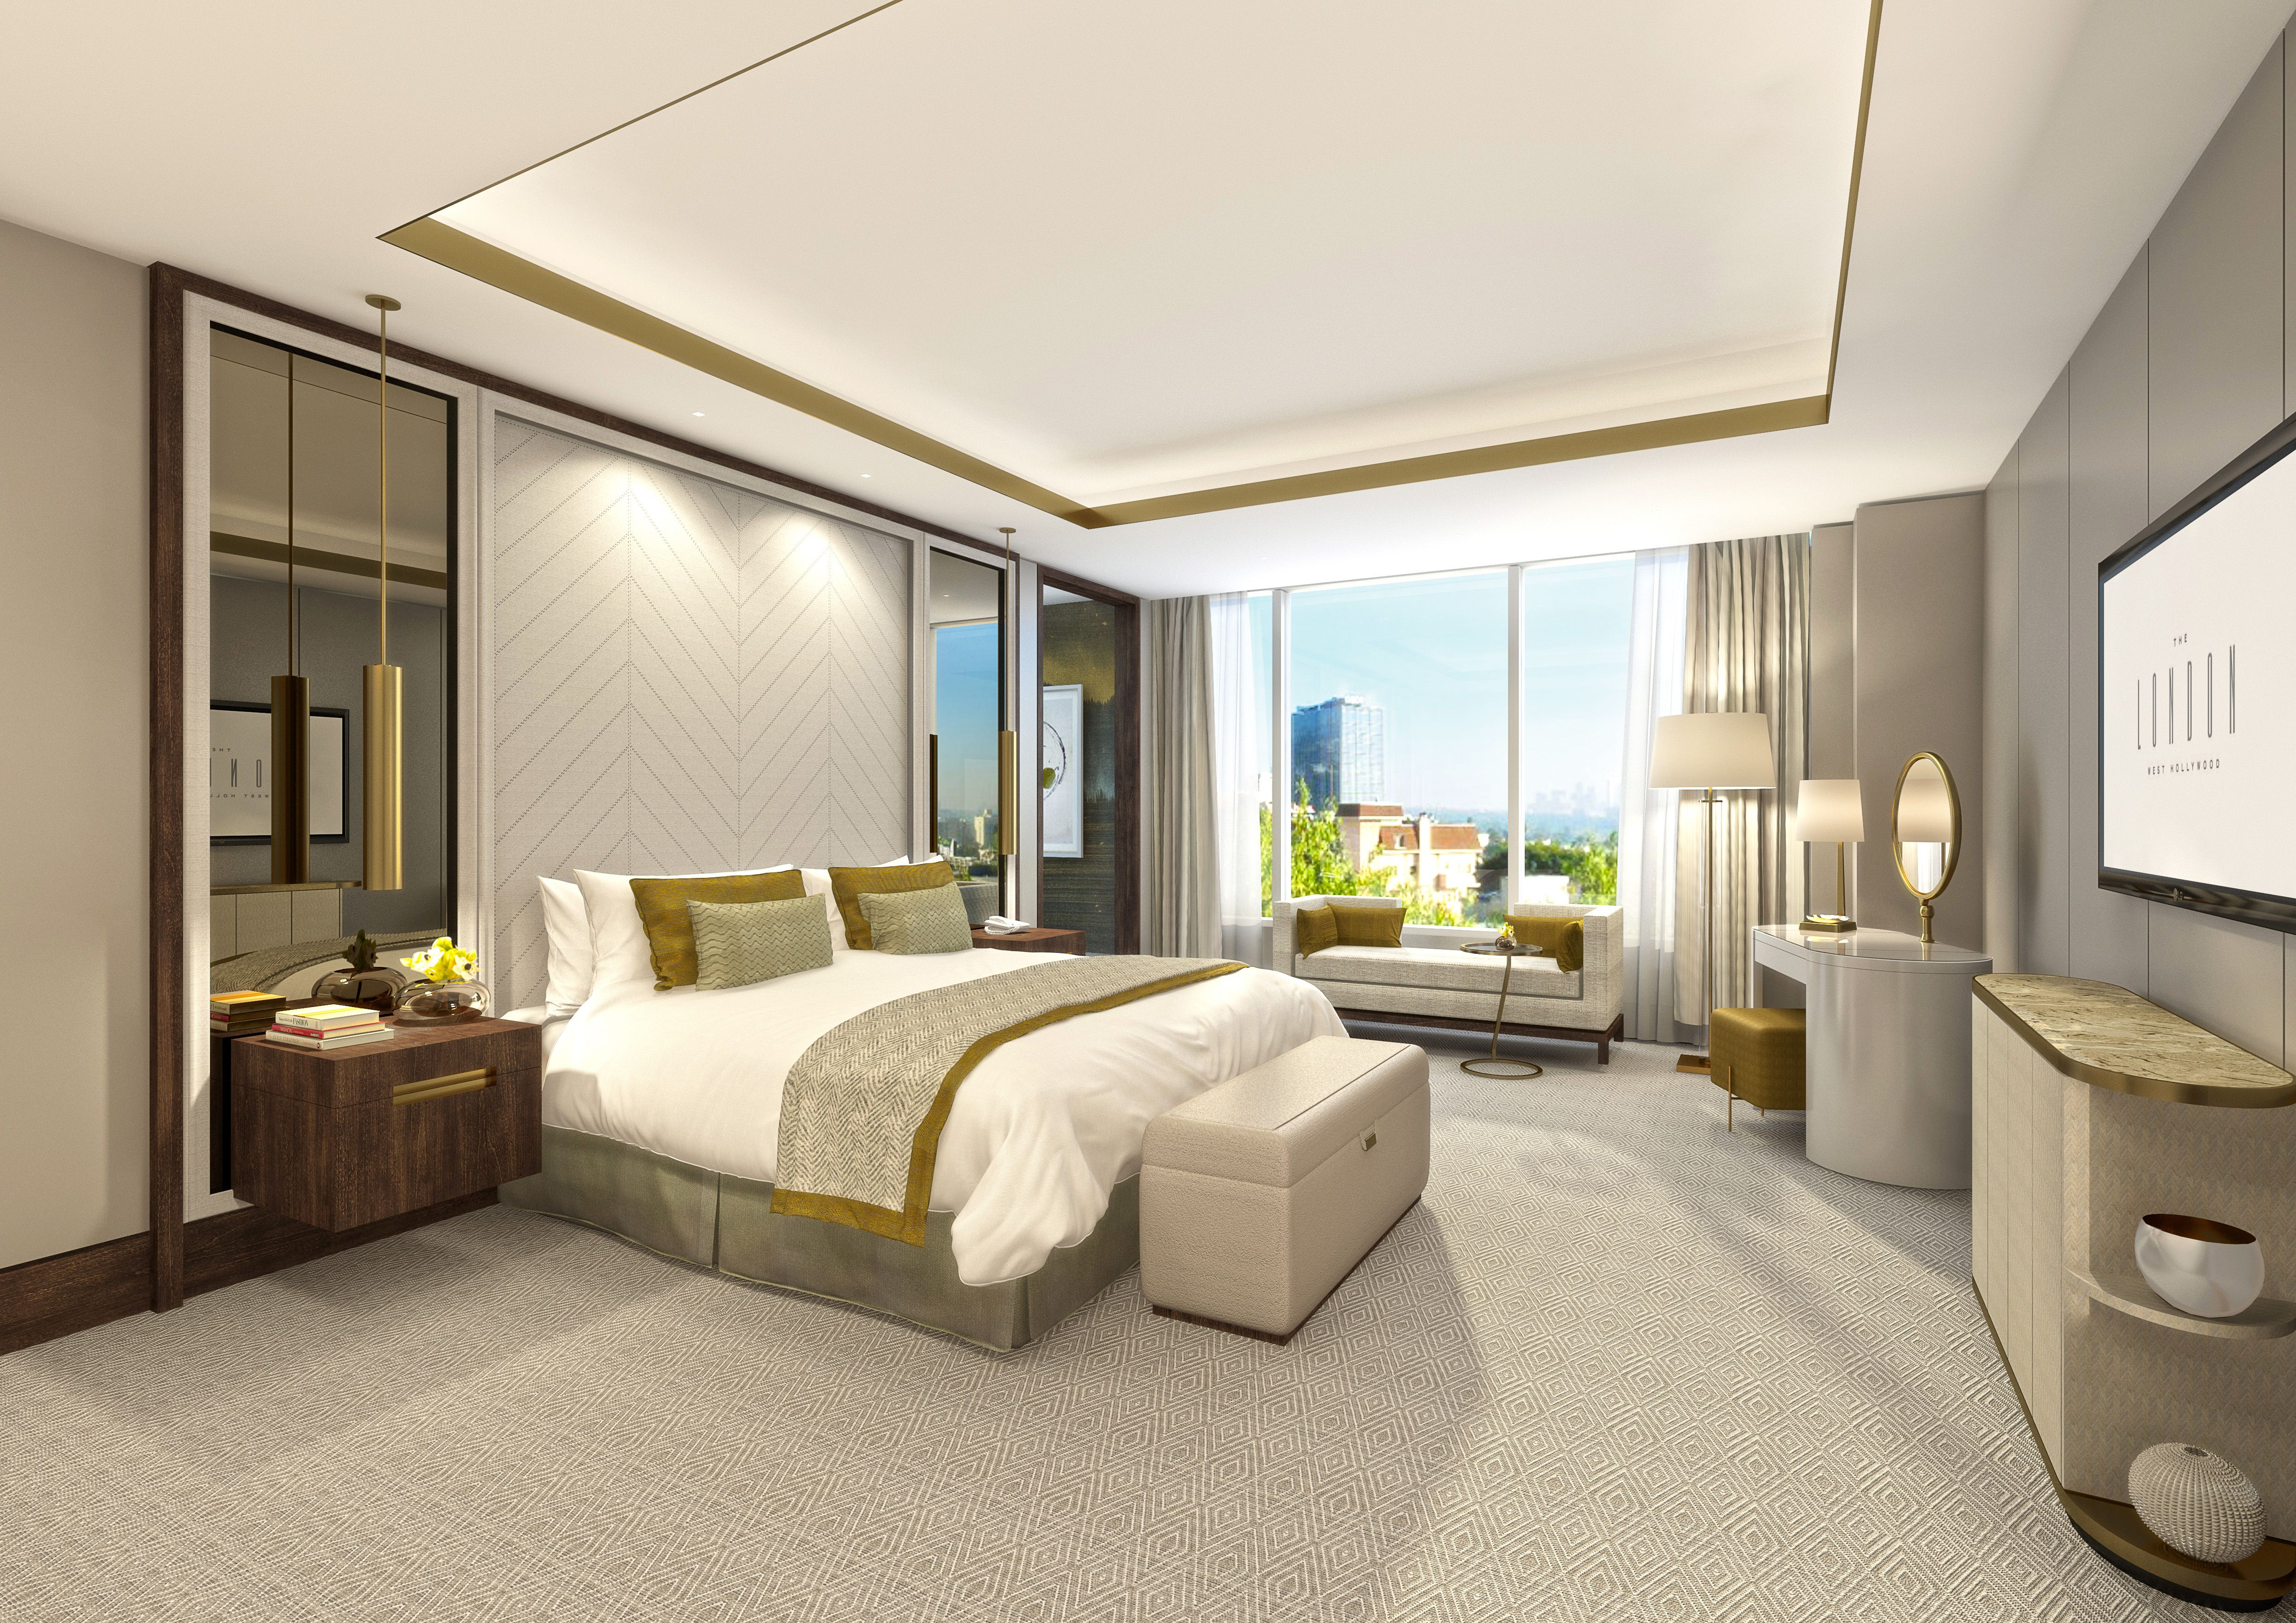 The metropolitan suites salon inspired by london 39 s - London hotels with 2 bedroom suites ...